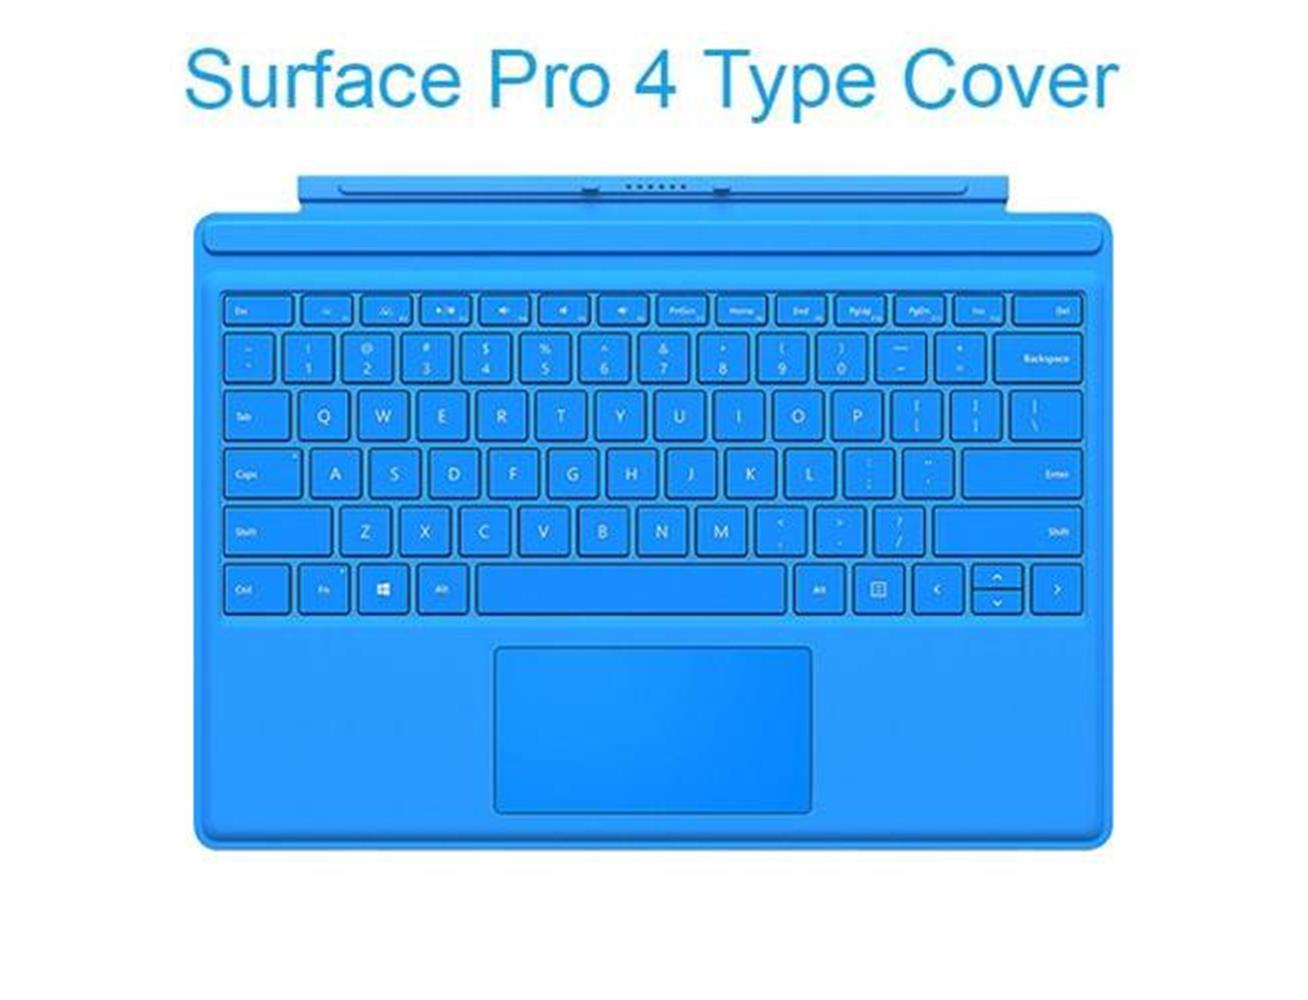 d34fd315baa Microsoft - Surface Pro 4 & Surface Pro 3 Type Cover - Bright Blue ...